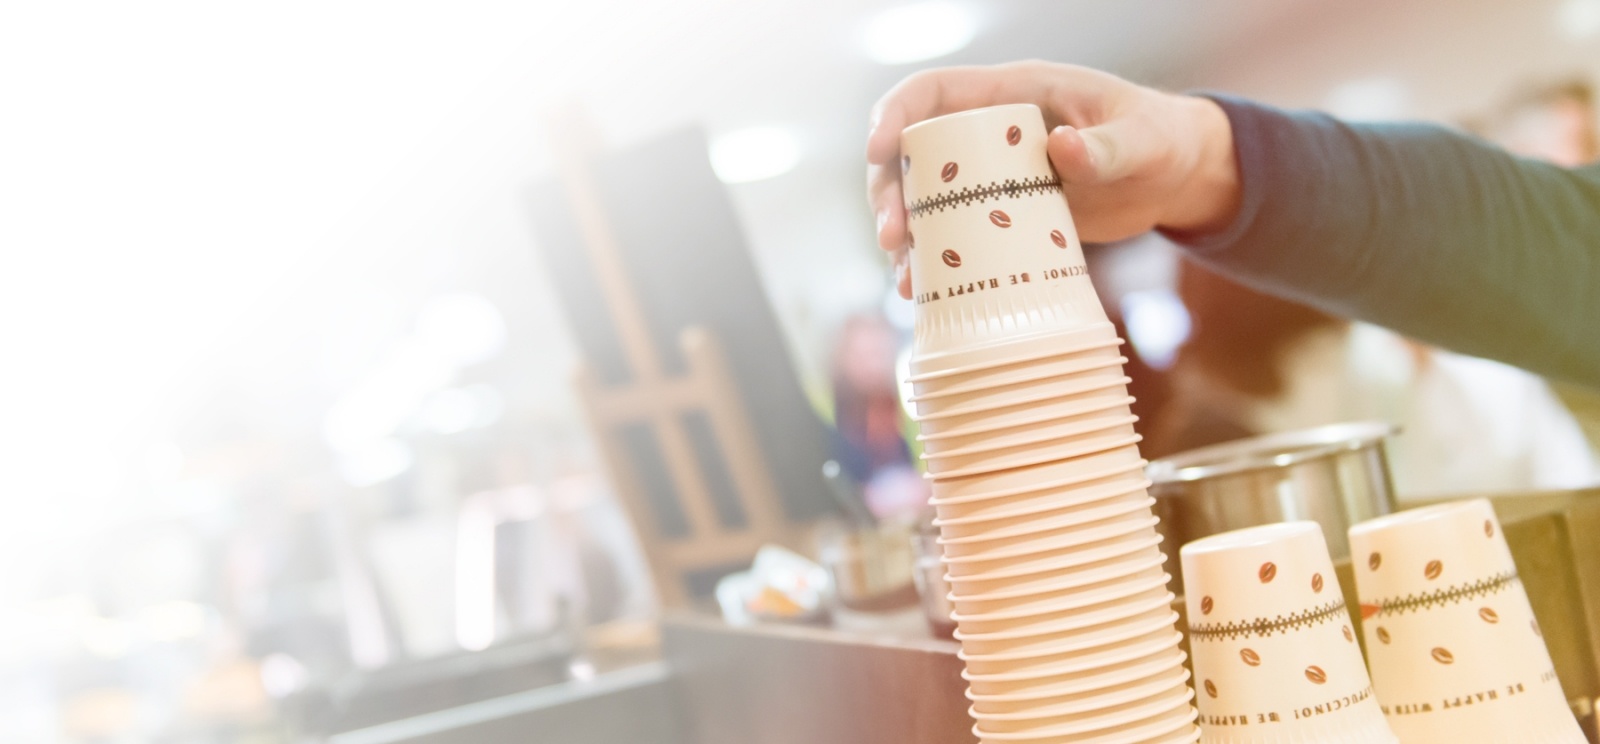 Person picking a plastic cup from a stack of cups